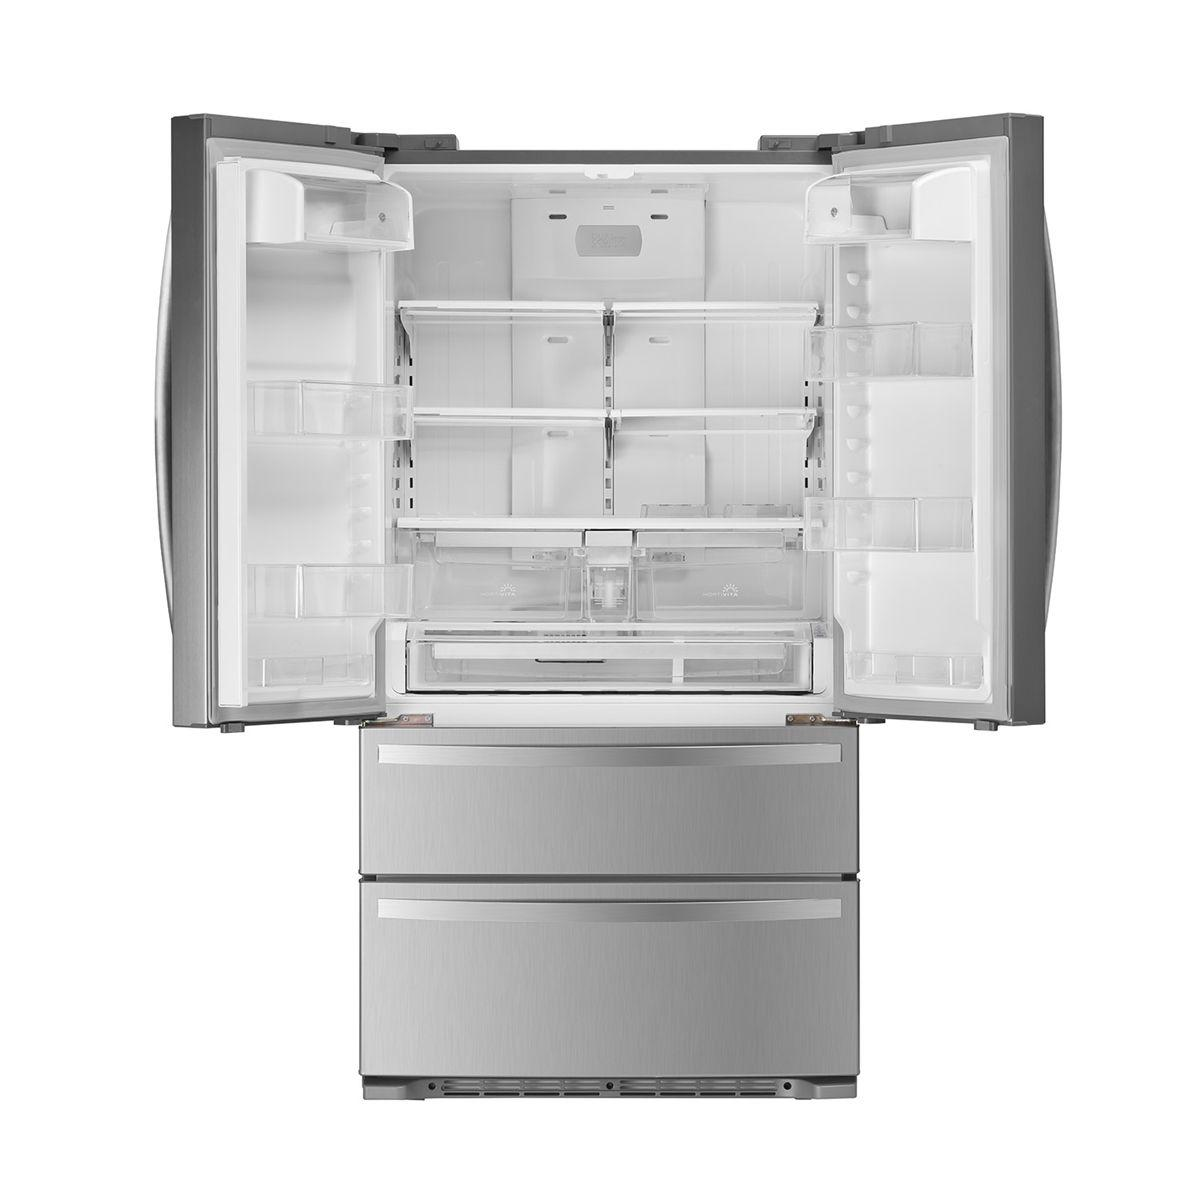 electrolux french door french door 517l inox fdd80 electrolux electrolux